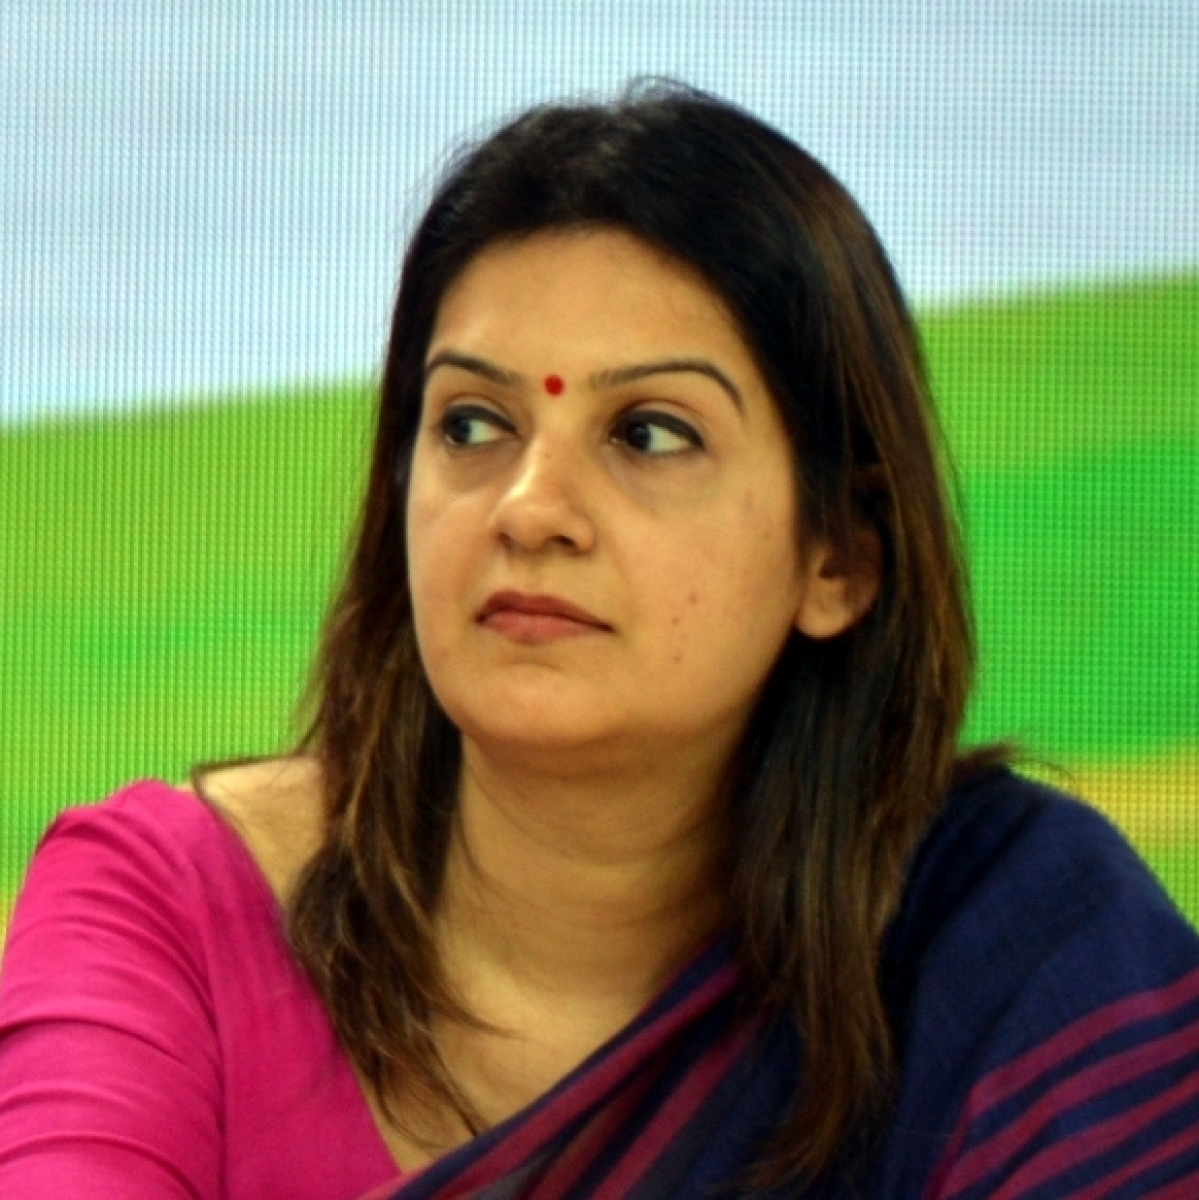 Shiv Sena's Priyanka Chaturvedi urges Centre to ensure safe return of Indian sailors aboard both ships stranded in Chinese waters